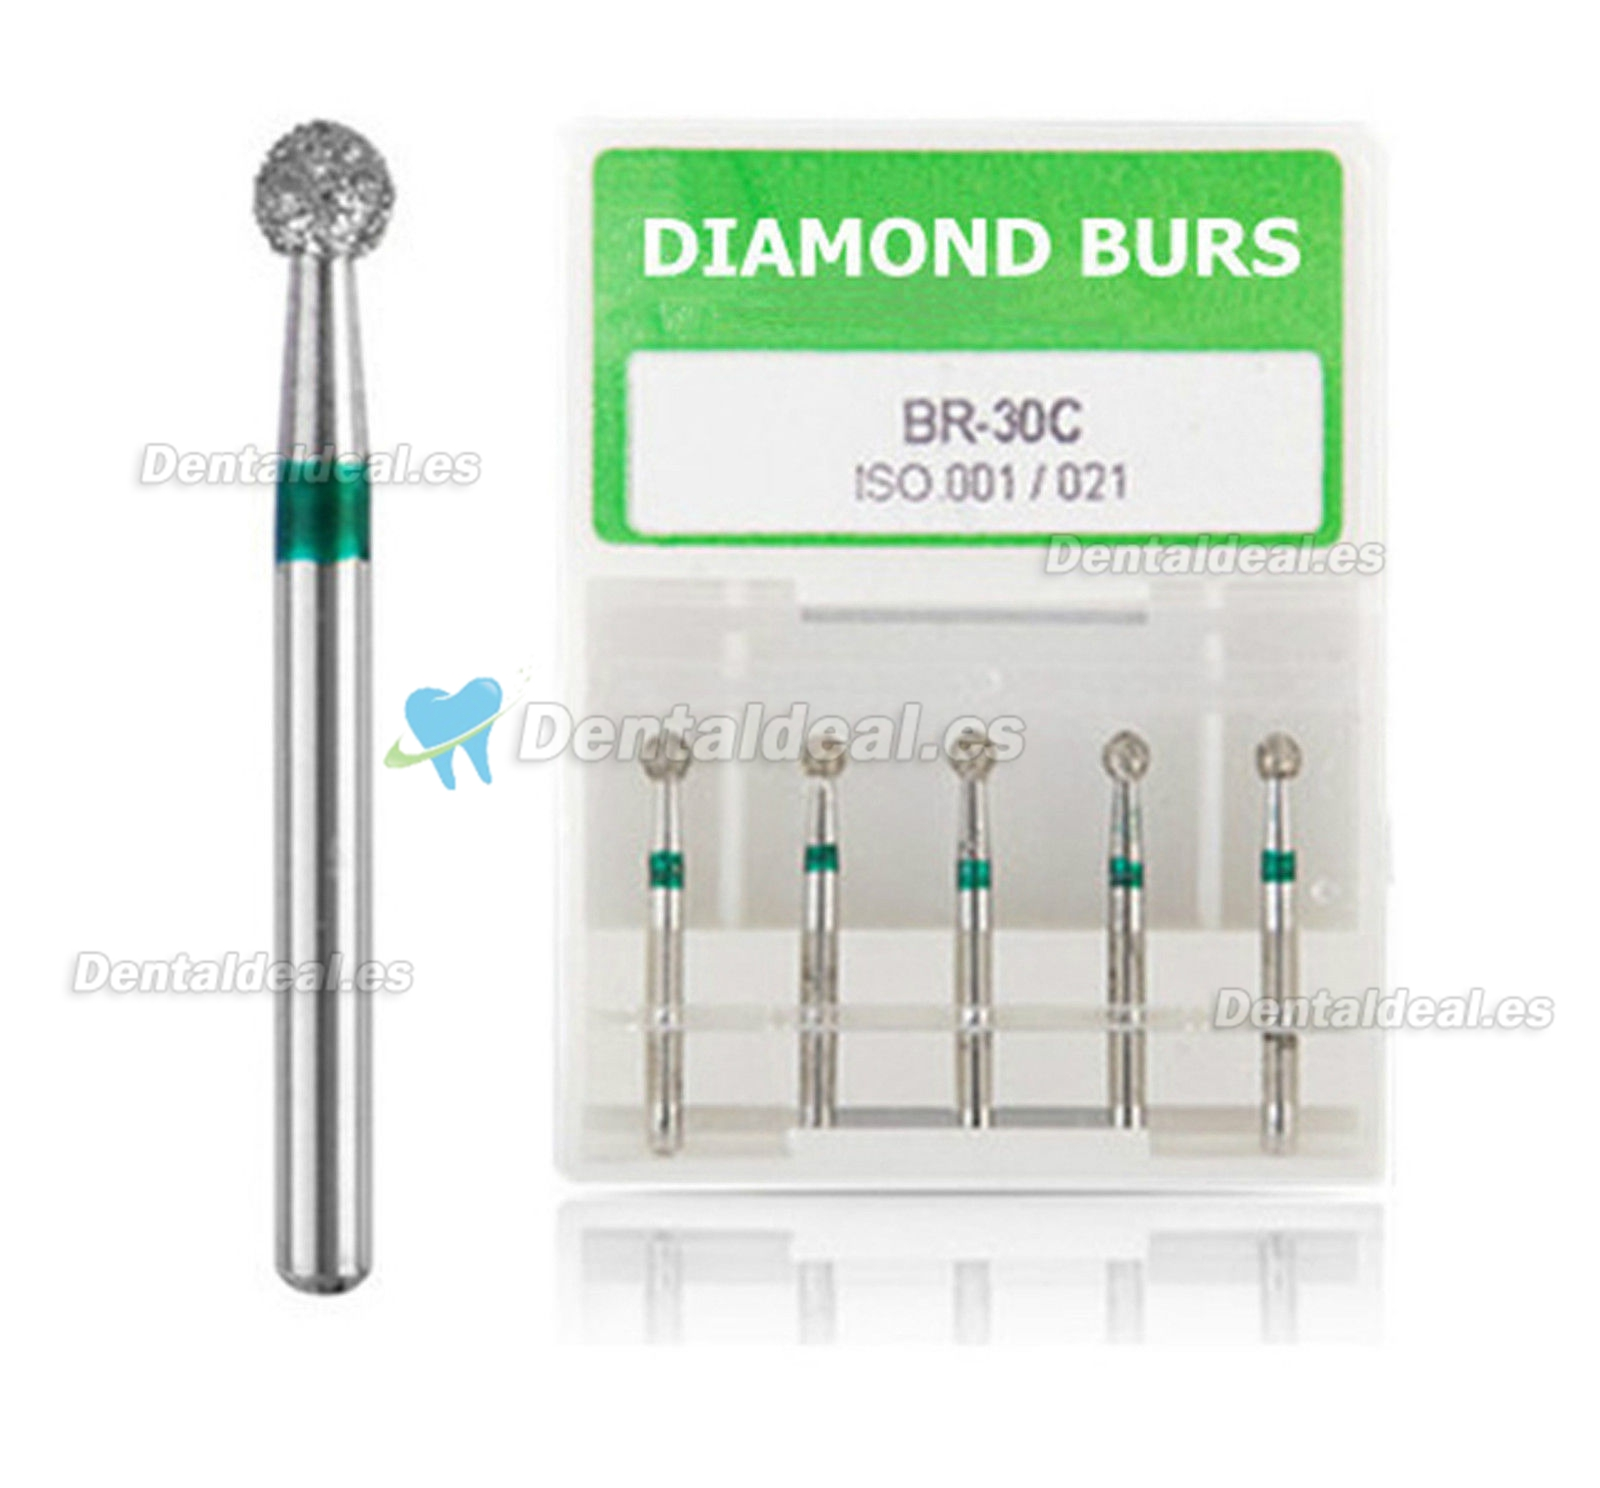 100PCS Diam Diamond Burs 1.6mm FG BR-31C